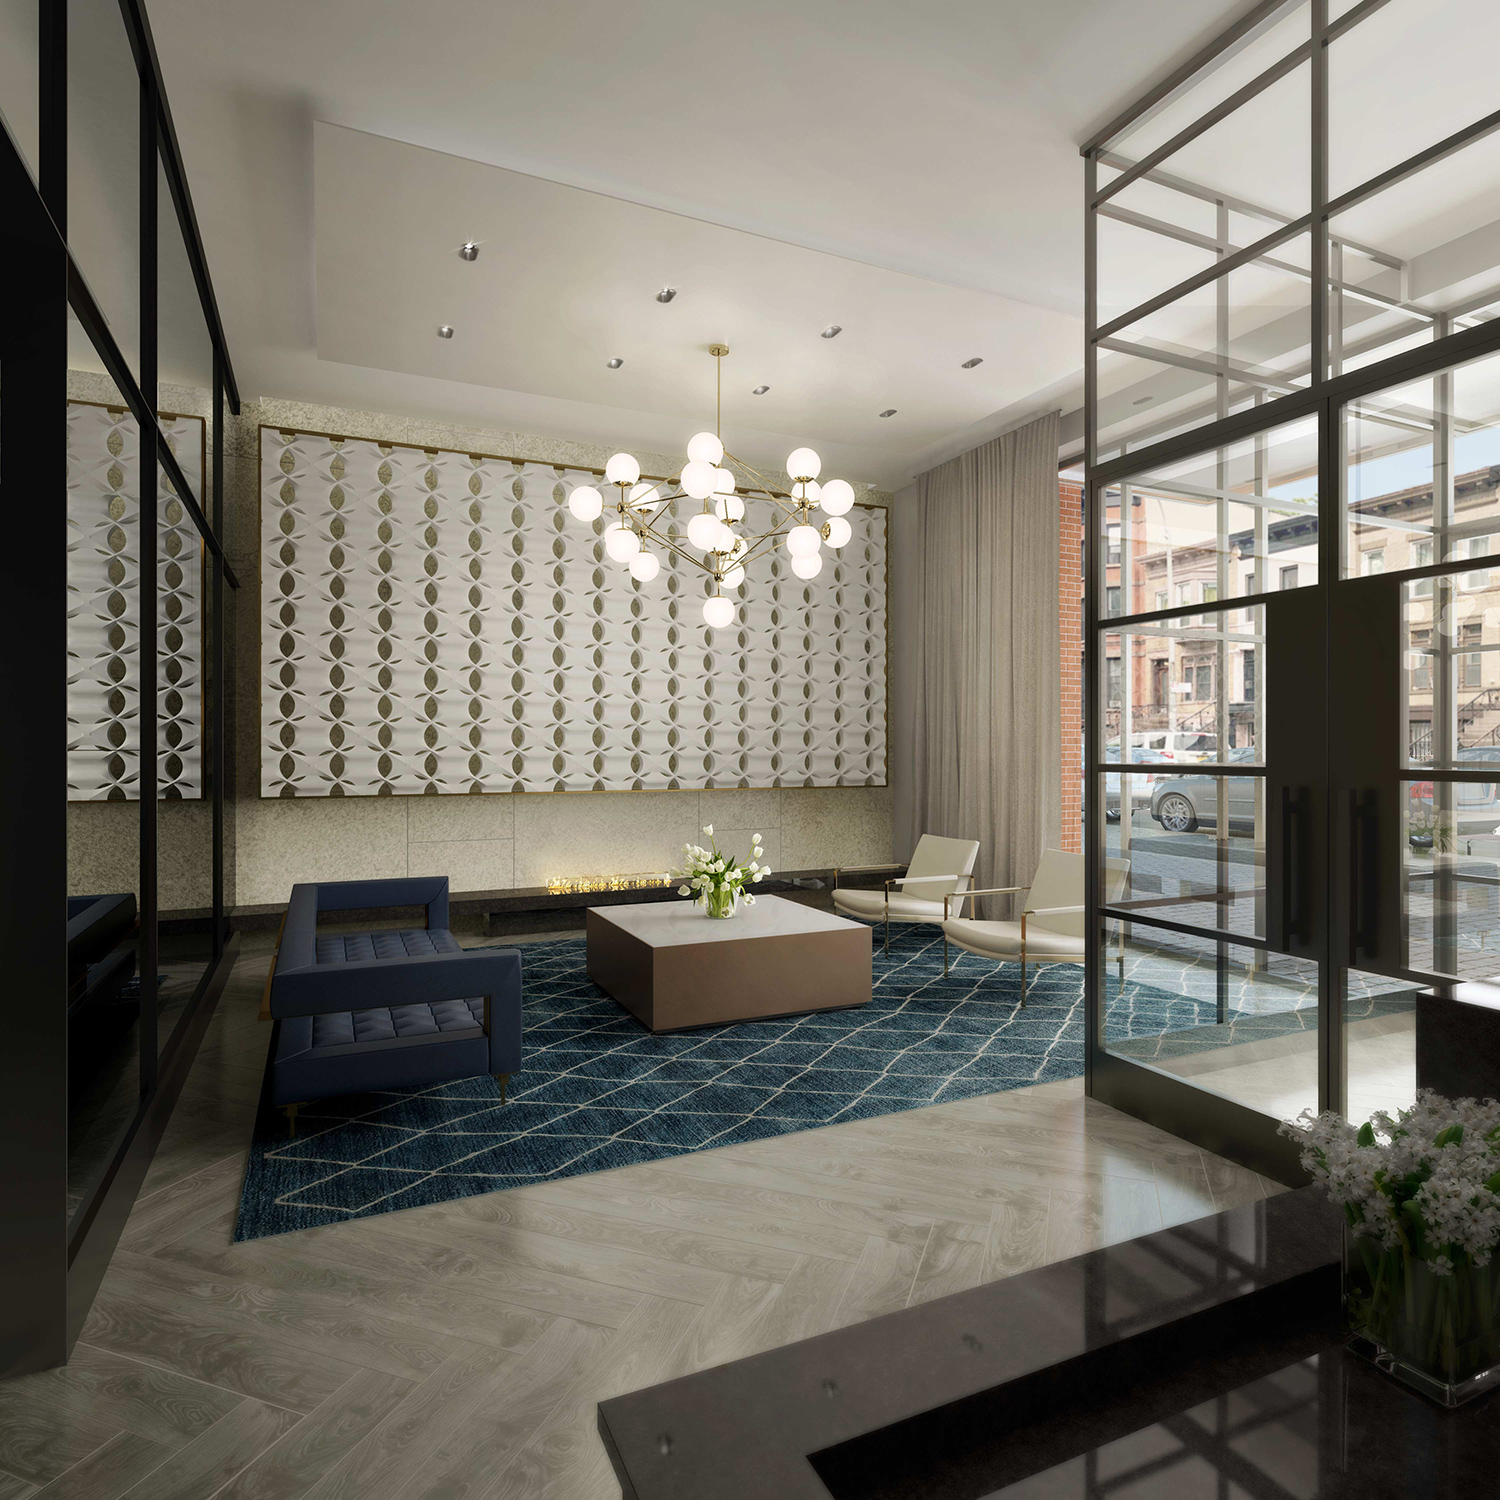 Apartments For Rent In York Me Furnished Under 1000: New Interior Renderings Revealed For 325 Lafayette Avenue